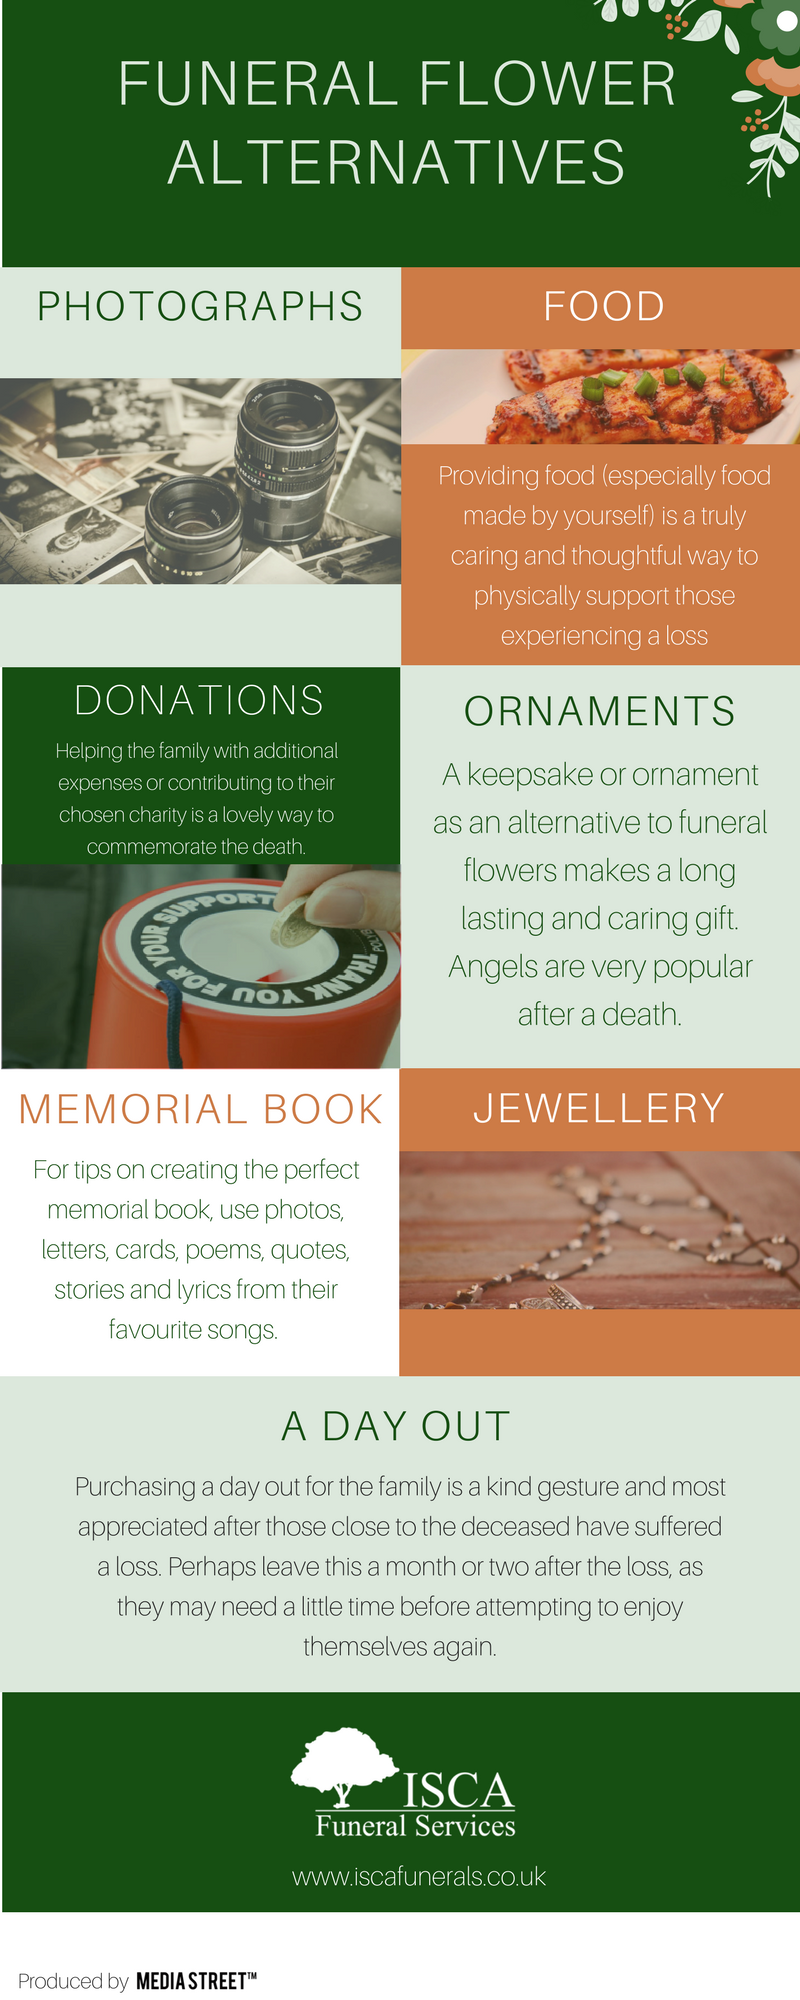 funeral flower alternatives infographic